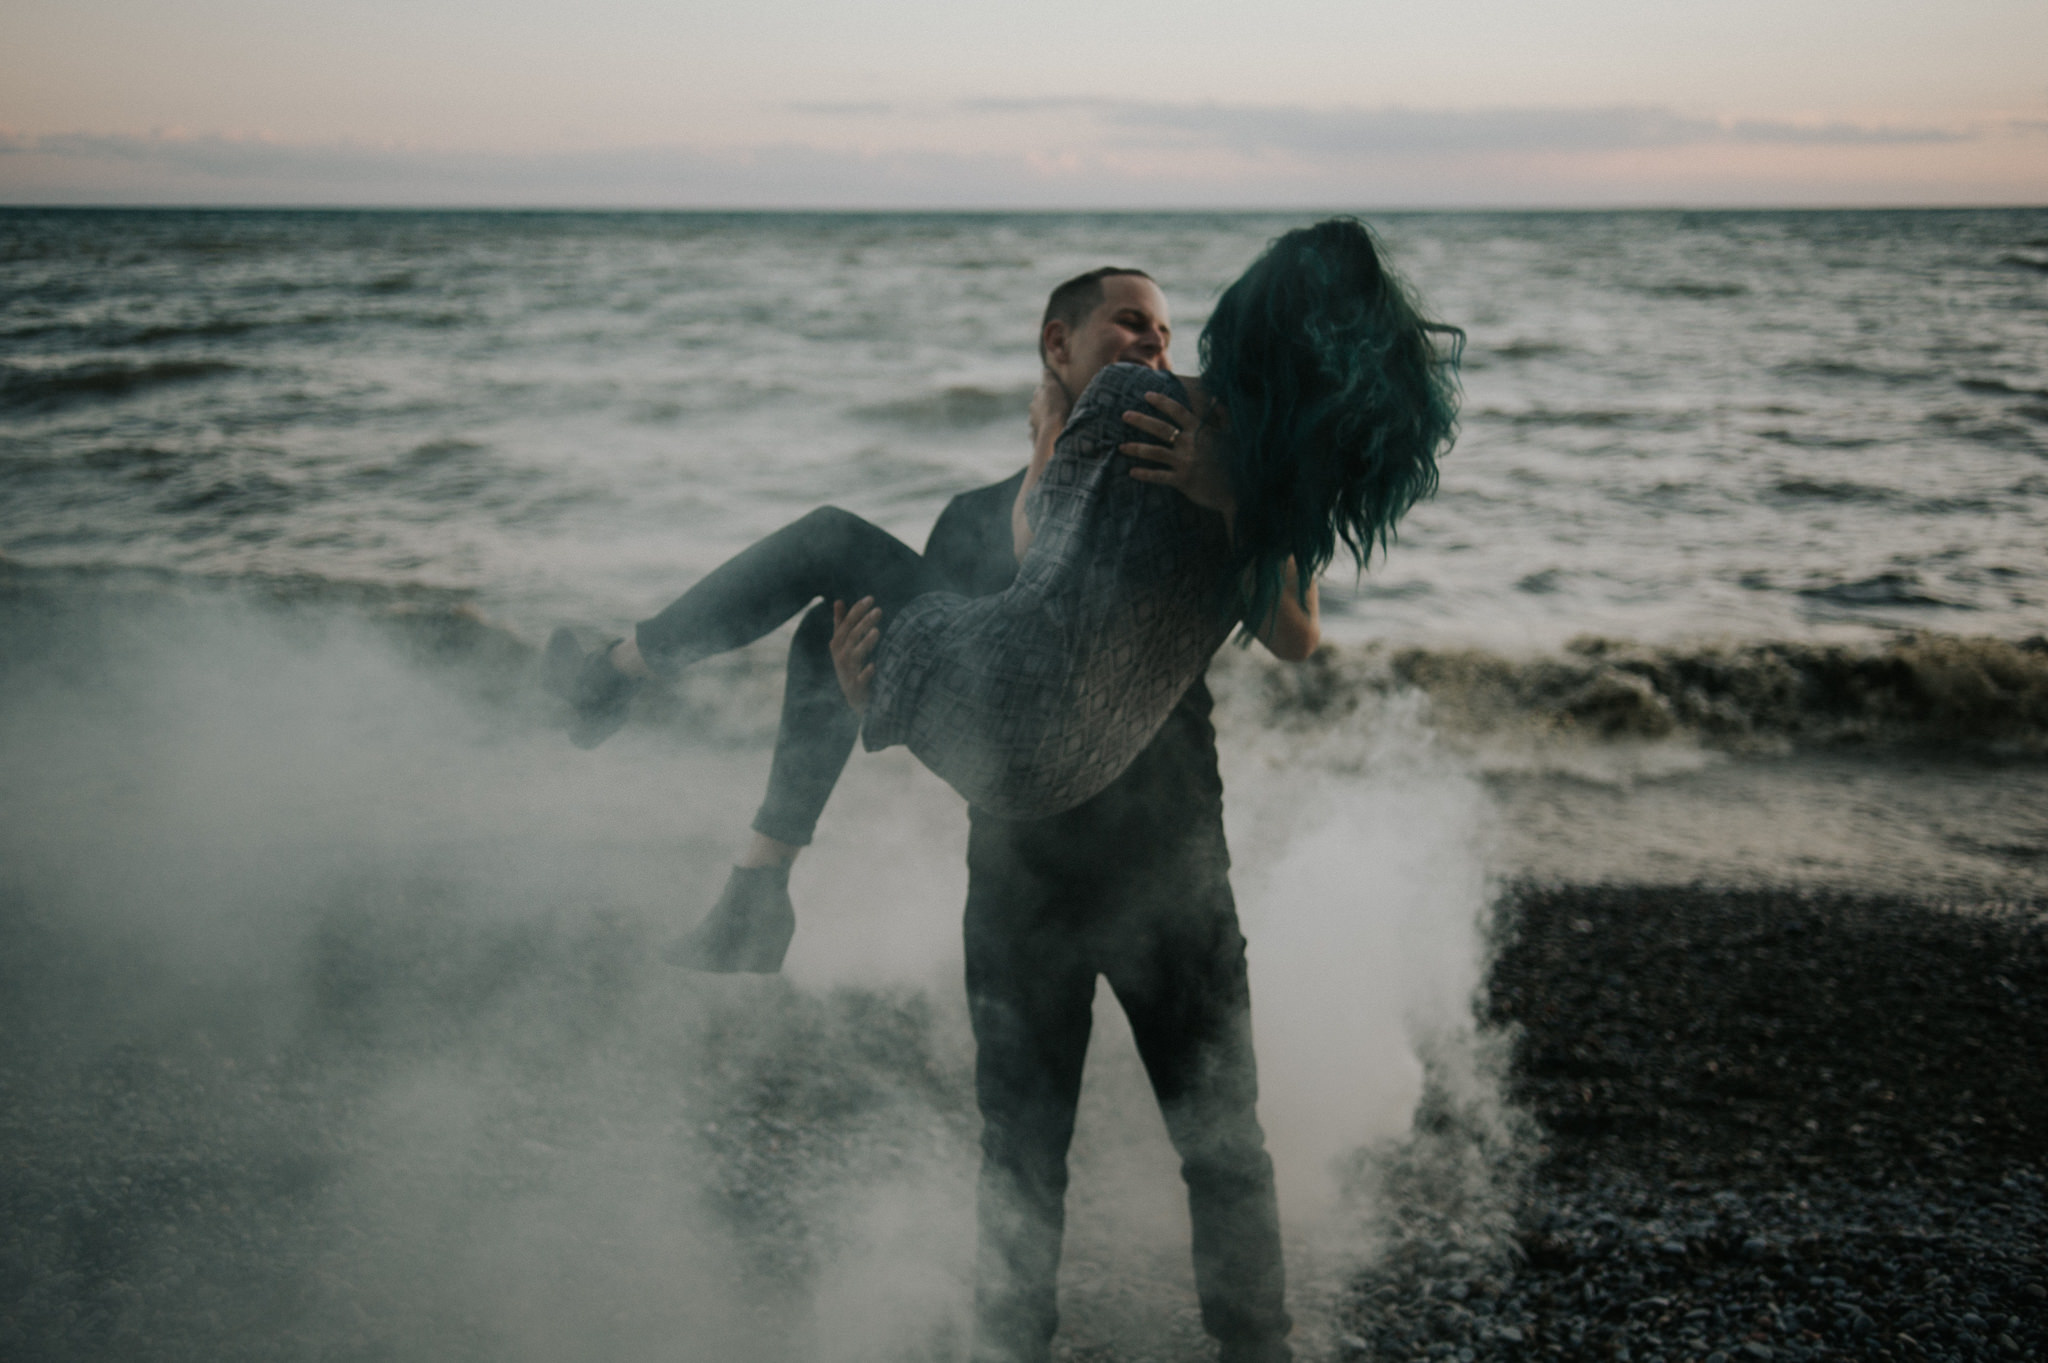 Smoke Bomb Portraits at dusk // Toronto wedding photographer Daring Wanderer